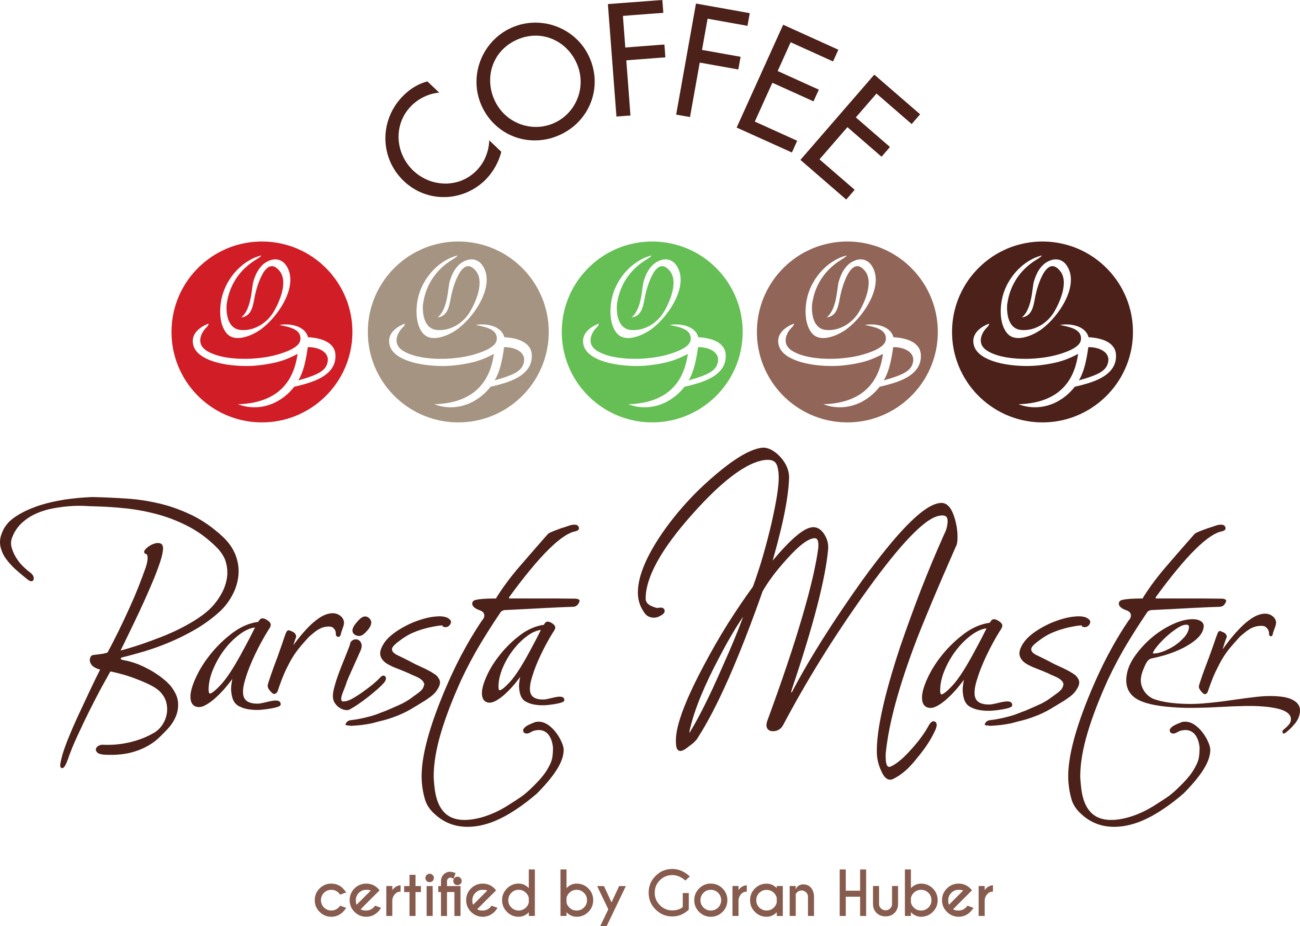 Barista Coffee Master